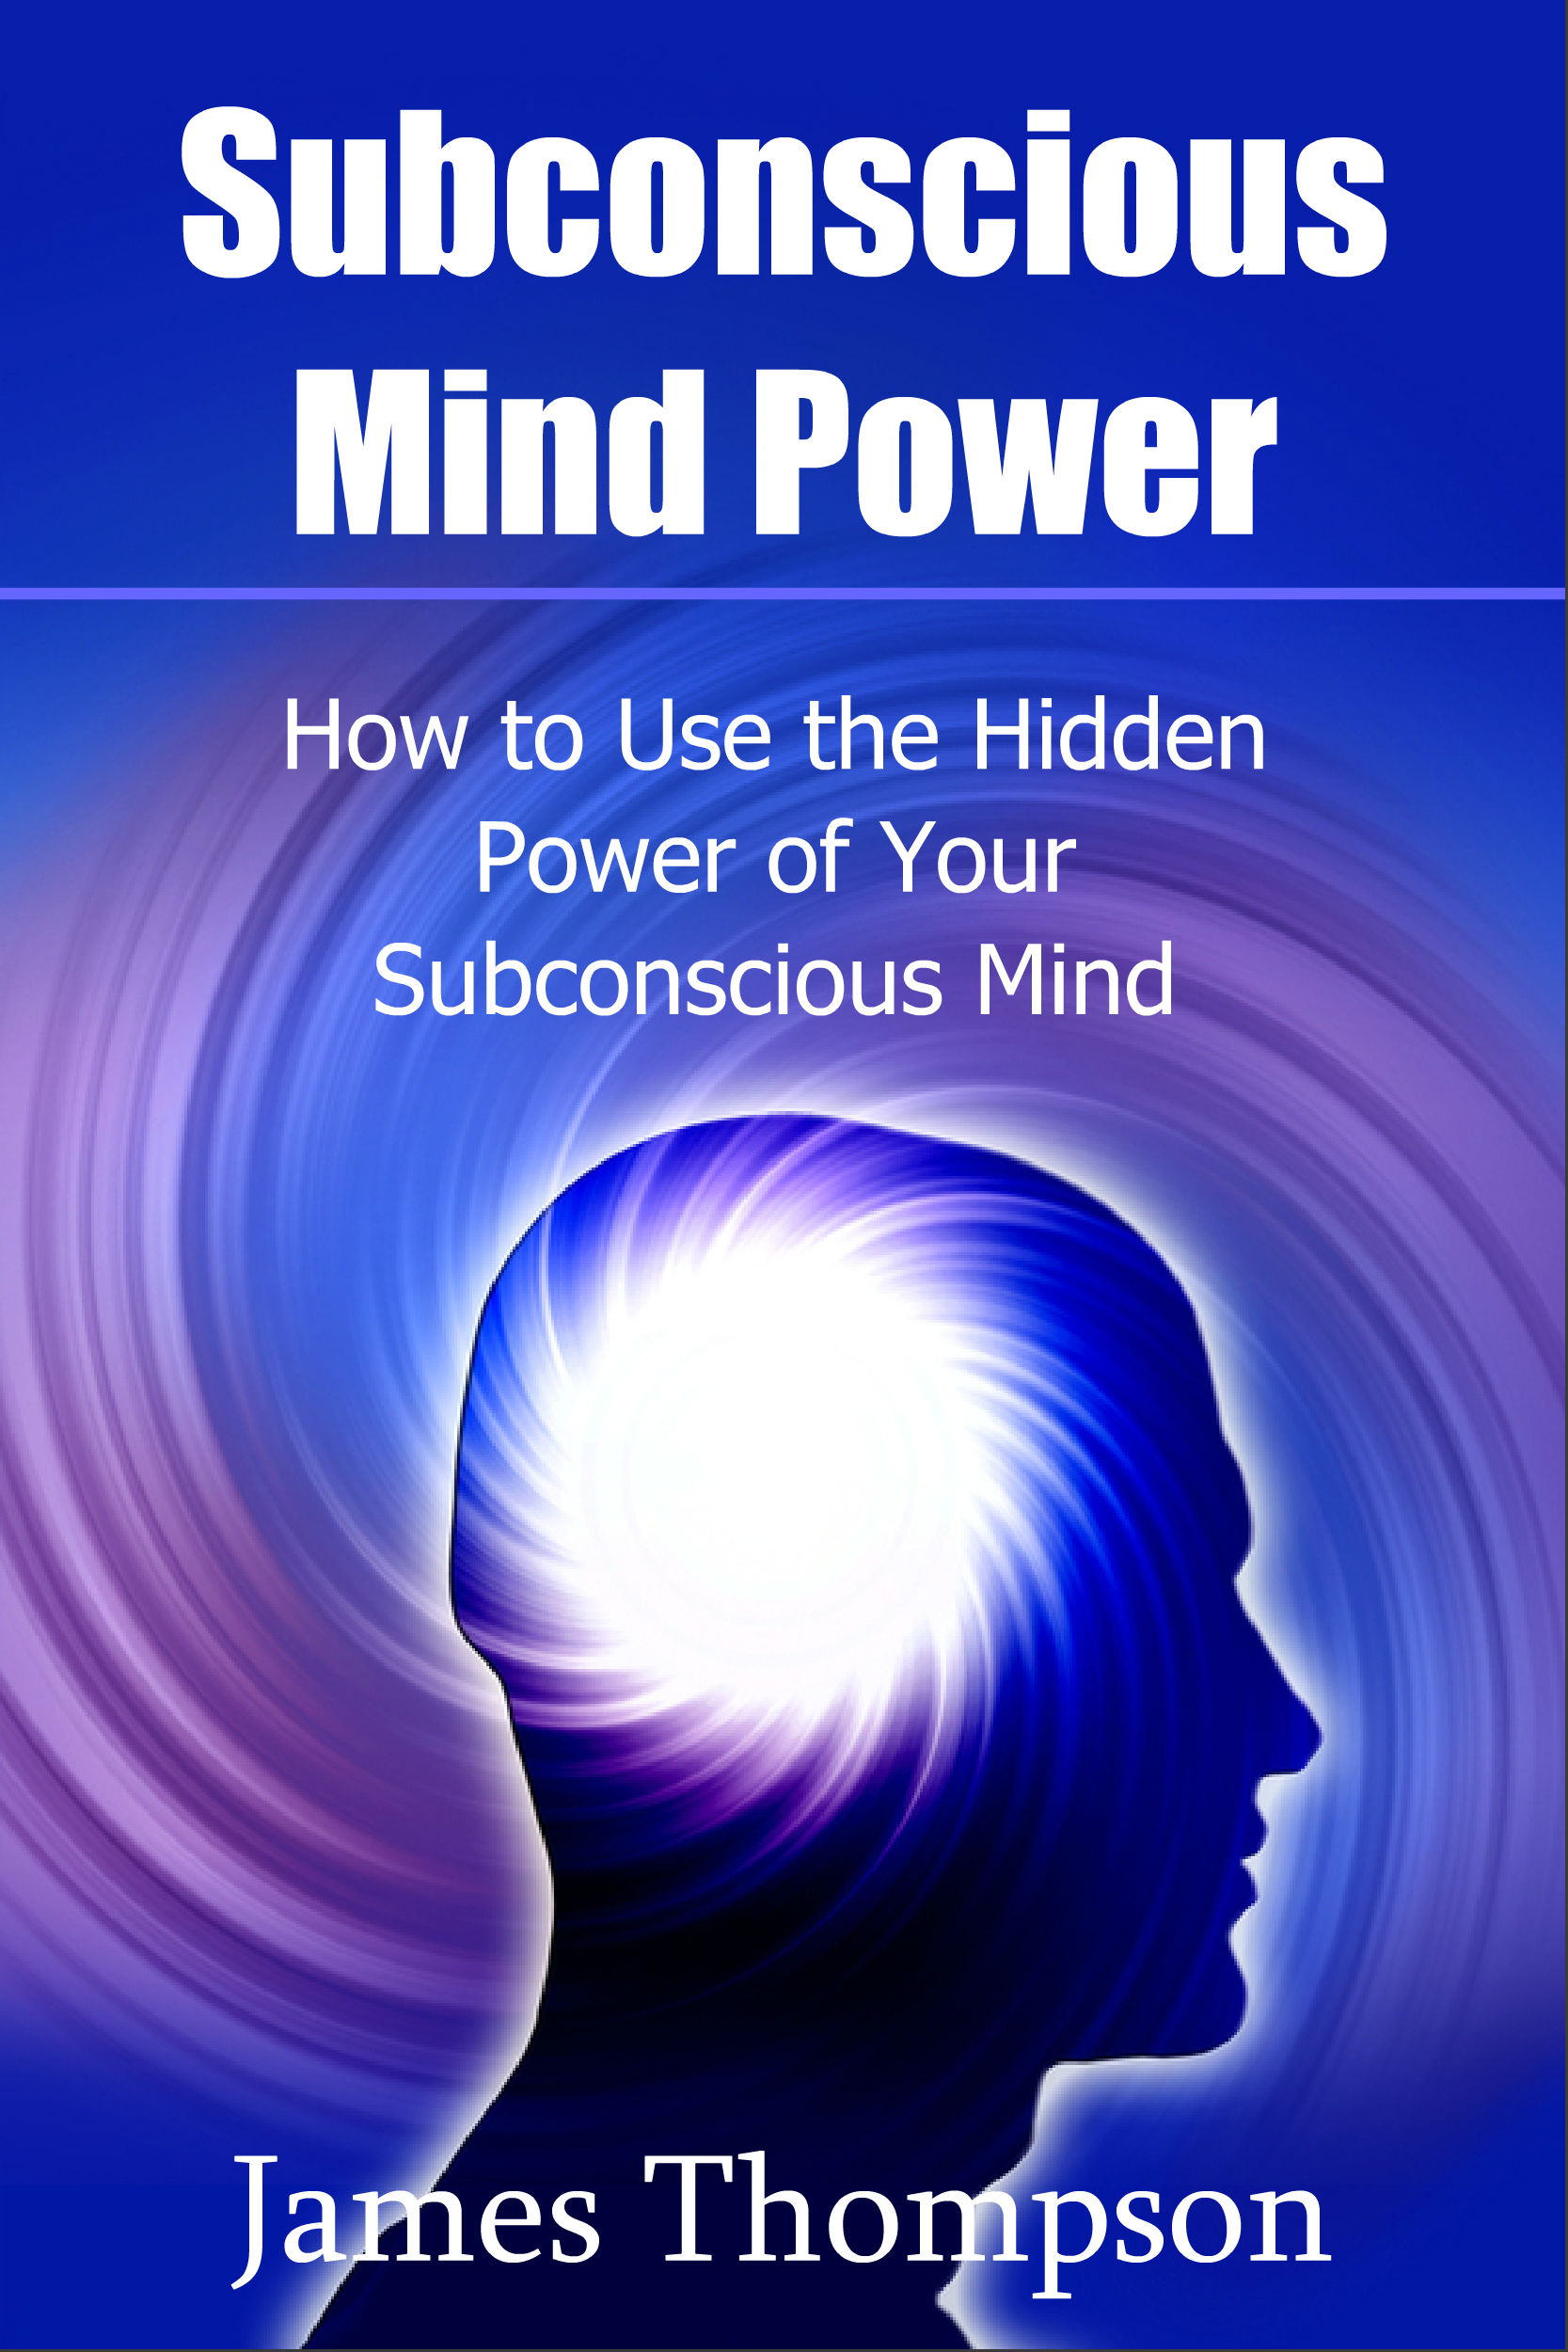 mind power Some describe it as a masterpiece, some describe it as an encyclopedia of the mind, some describe it as containing the secrets of mental magic.